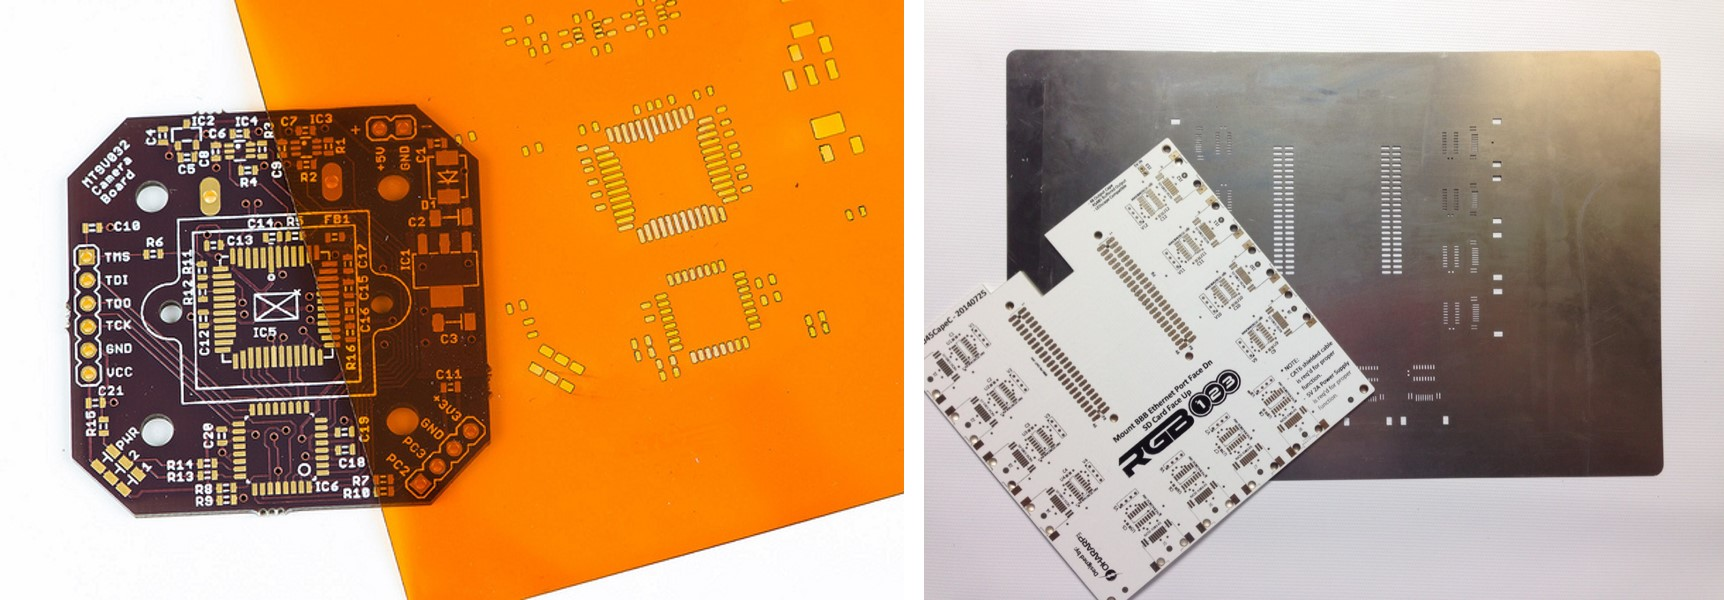 Stencils Ohararp Llc Smt Soldering The Sole Purpose Of An Stencil Is To Transfer Solder Paste A Bare Circuit Board Stainless Steel Foil Laser Cut Creating Opening For Every